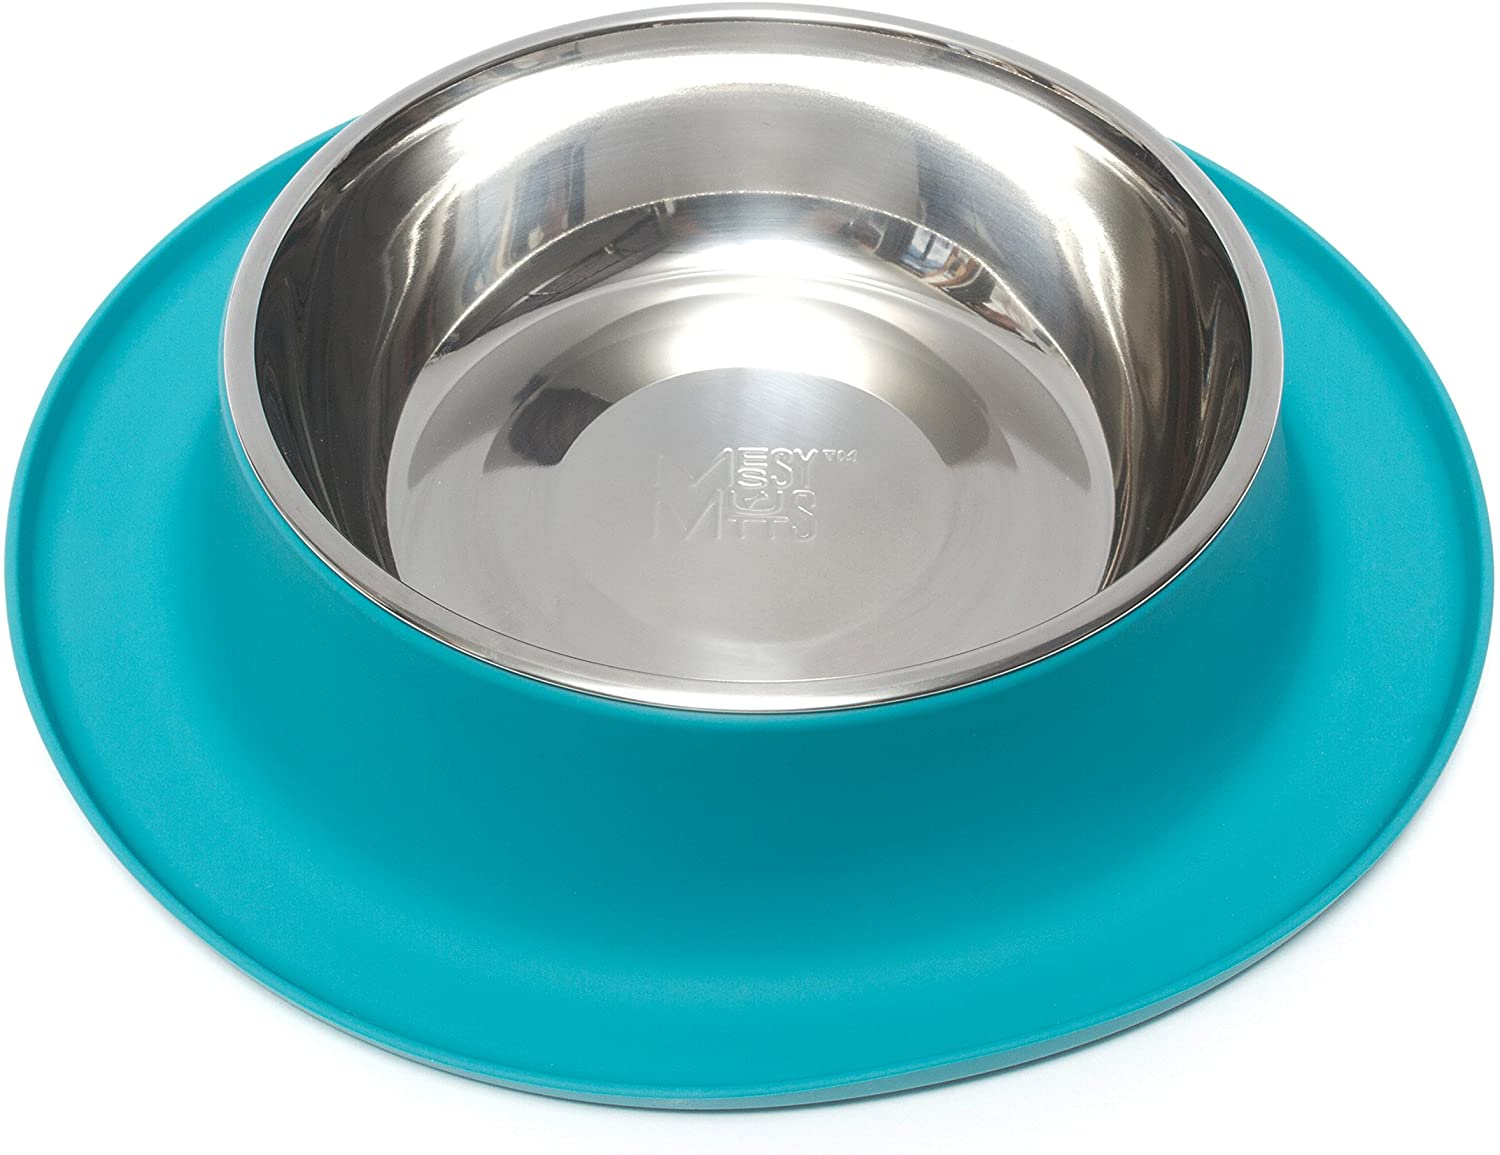 Messy Mutts Single Silicone Feeder with Stainless Bowl